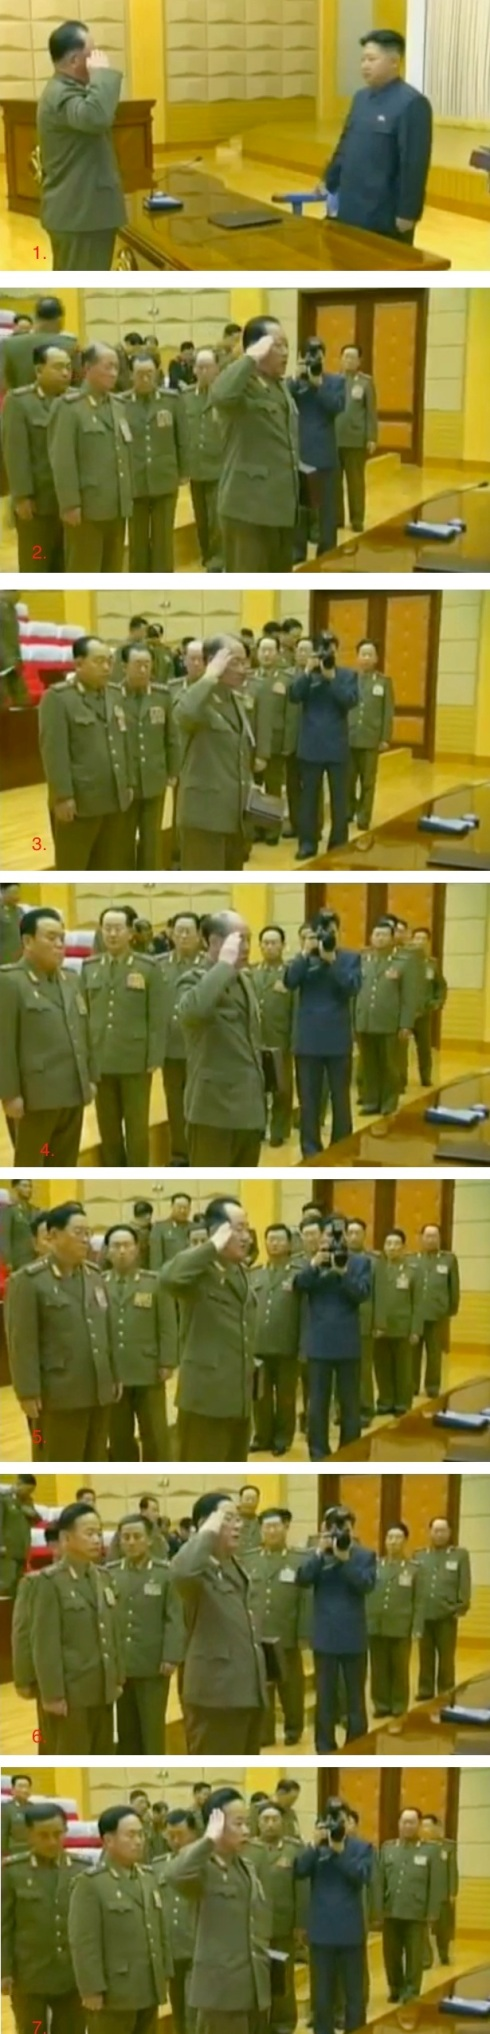 Presented with handguns at the conclusion of the expanded CMC meeting in early 2012 were: Gen. Ri Pyong Chol (1.), Gen. Choe Pu Il (2.), Gen. Yun Jong Rin (3.), Gen. Ri Myong Su (4.), Col. Gen. Jo Kyong Chol (5.), Gen. Pak Jae Gyong (6.), Lt. Gen. Pak Jong Chon (7.) (Photos: KCTV screengrabs)